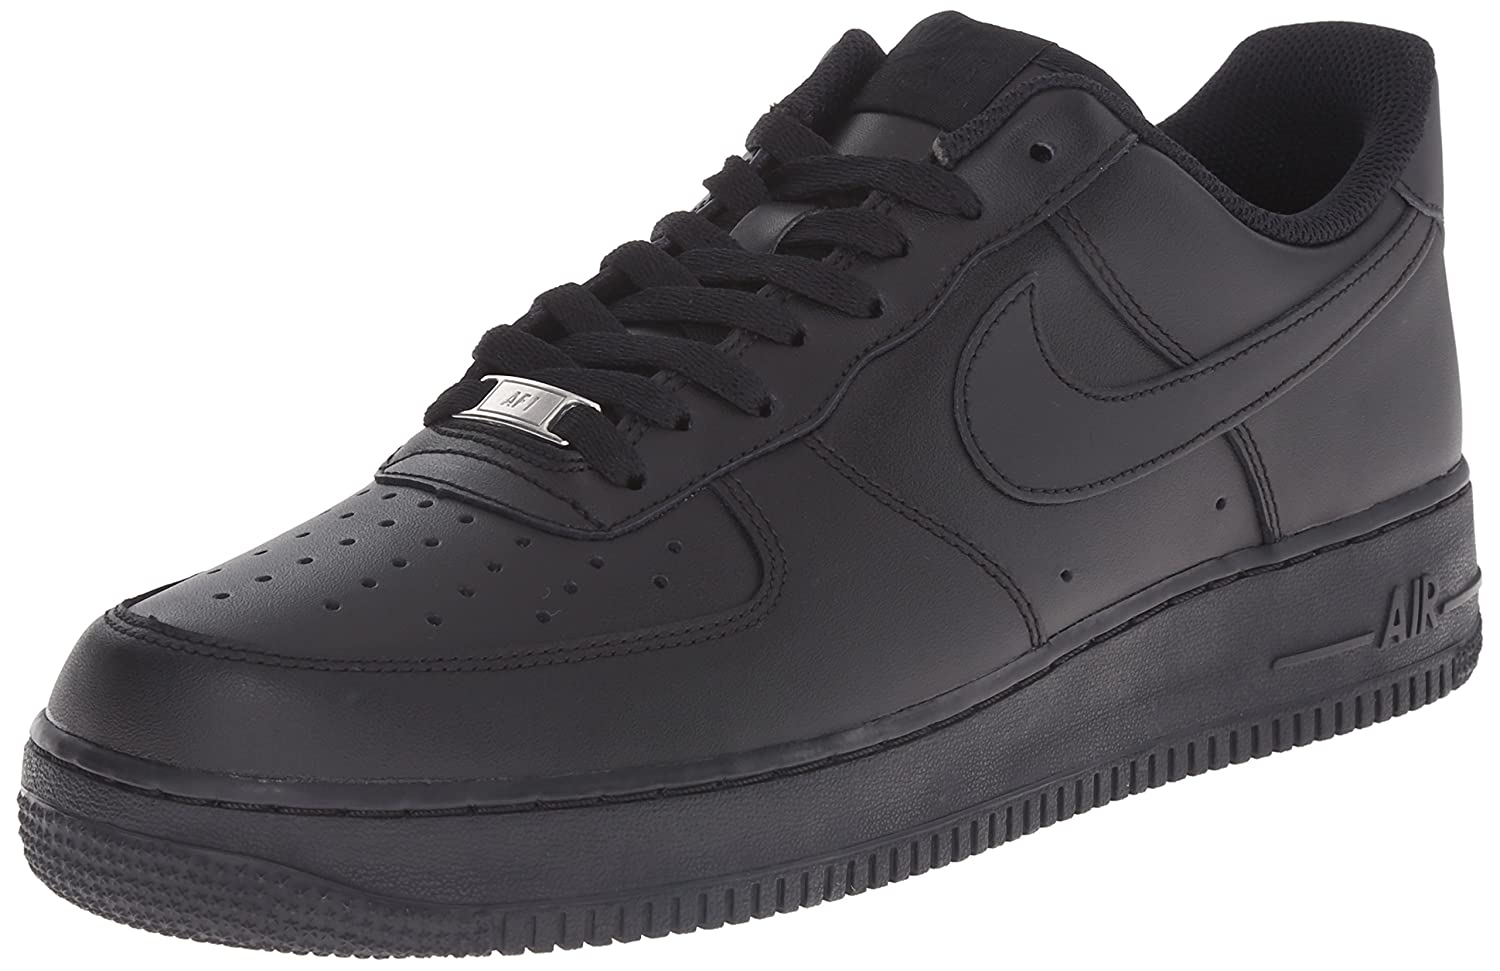 newest c1f8d 8f44d Nike Men s Air Force 1 Low Sneaker